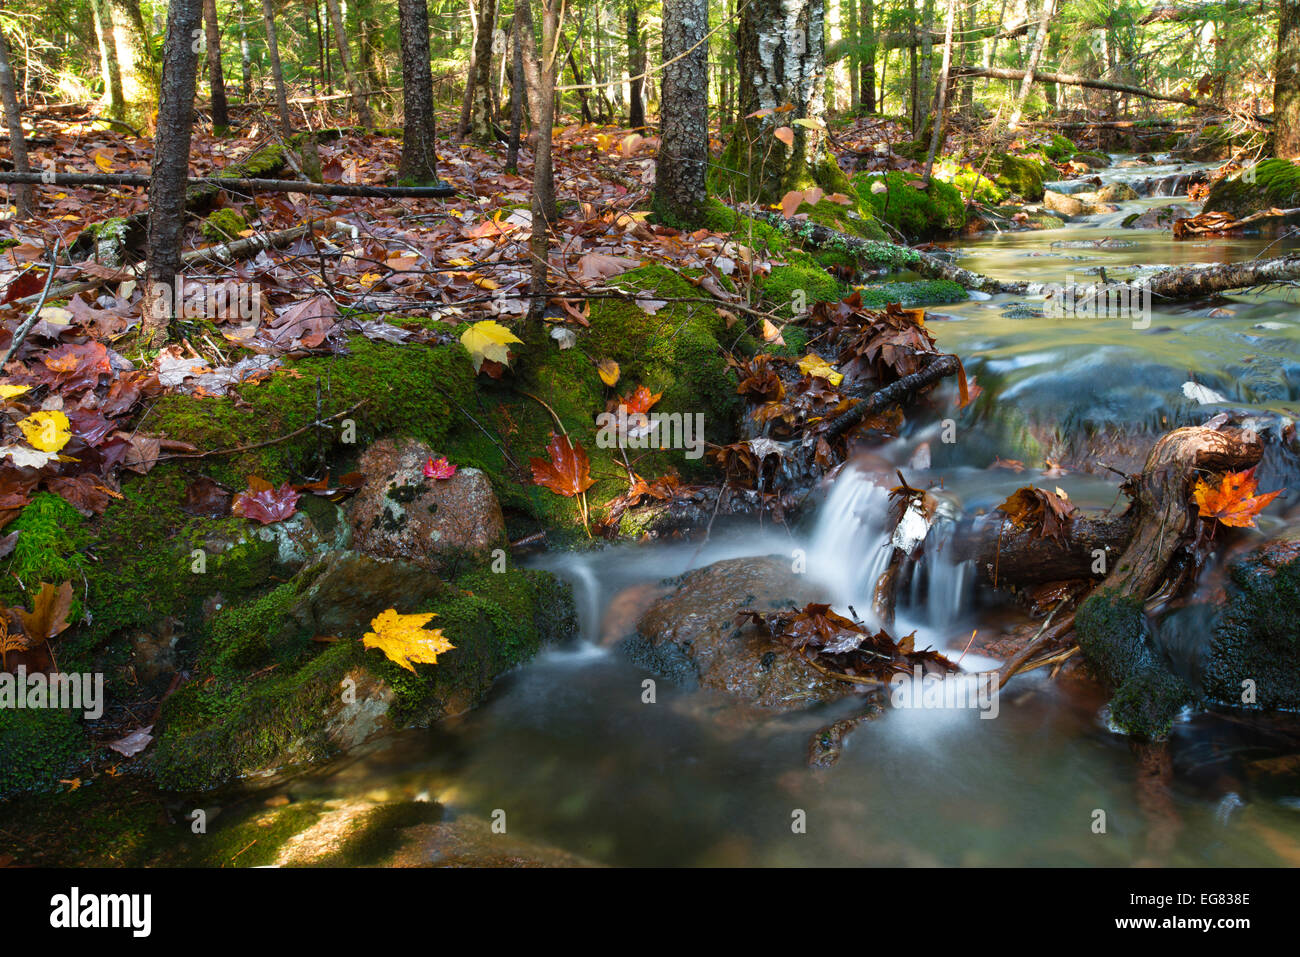 Forest harmony - Unnamed creek, Acadia National Park - Stock Image